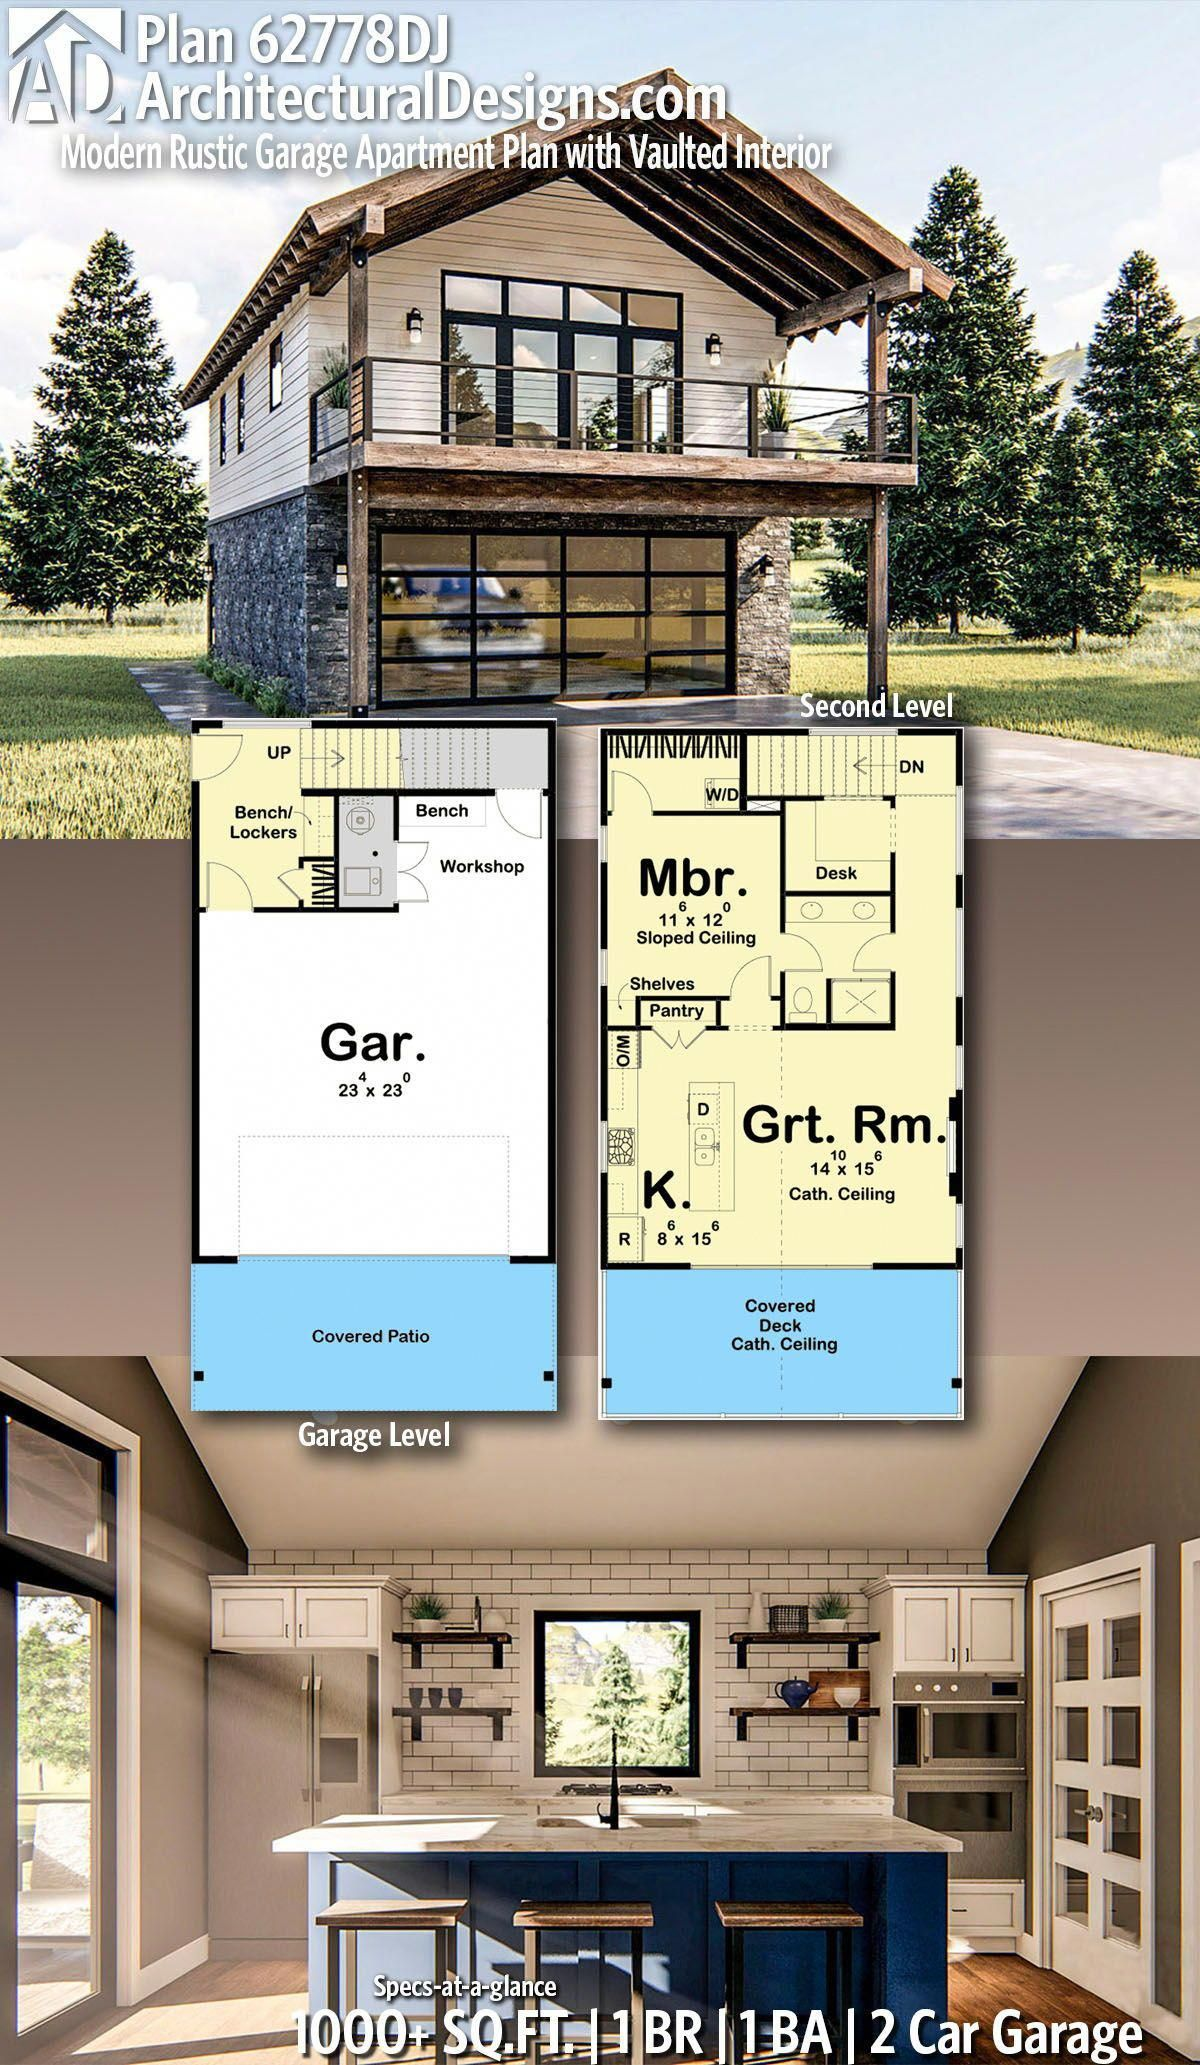 Easy Scroll Saw Patterns In 2020 Carriage House Plans Garage Apartment Plan Tiny House Plans